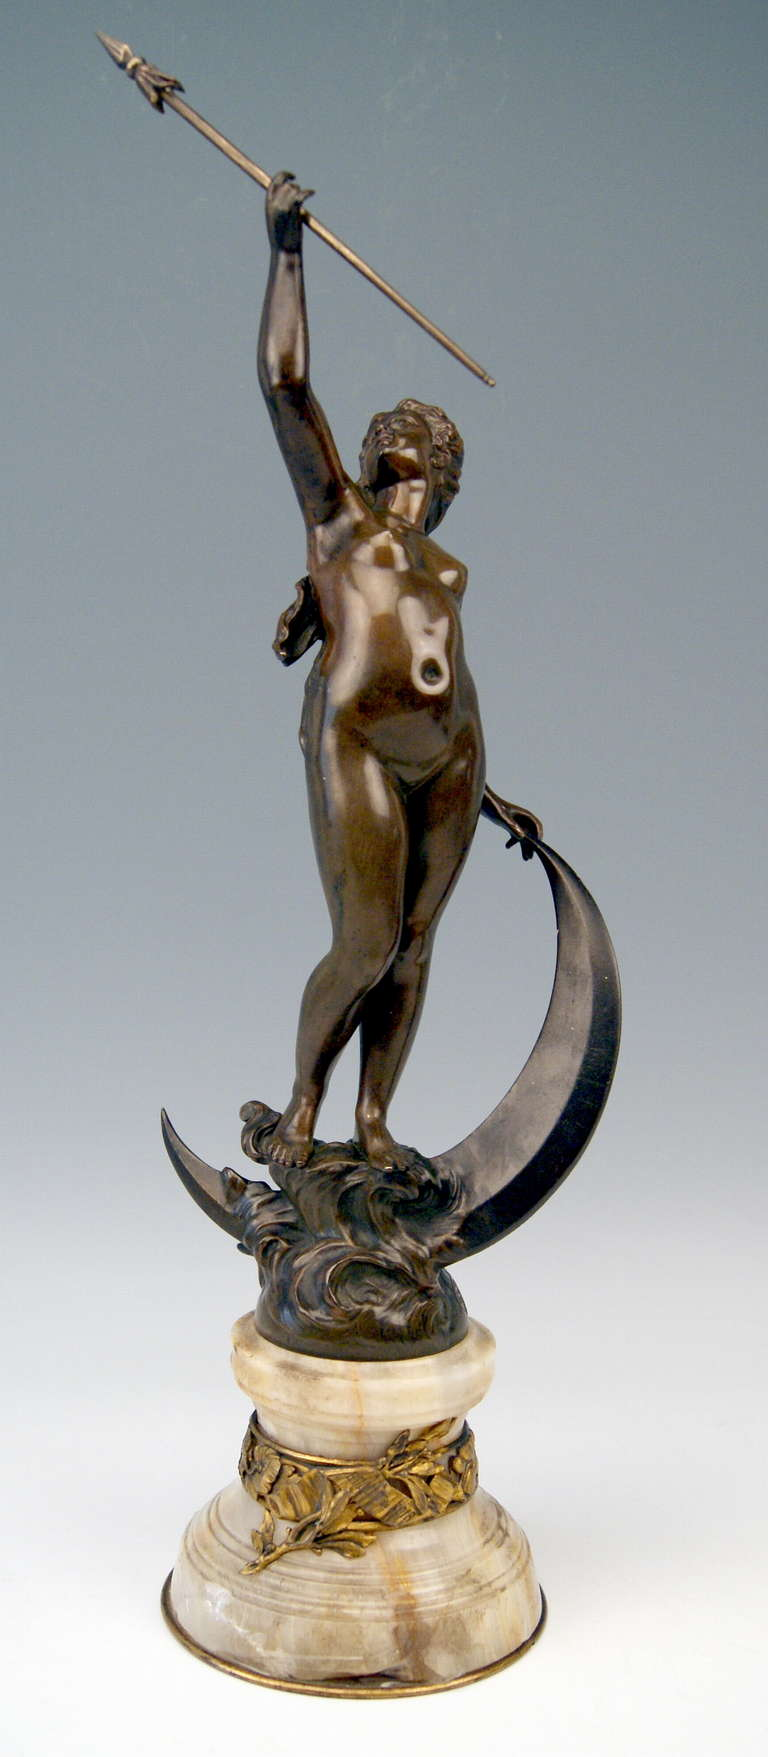 Gorgeous French bronze figurine made by French manufactory  (possibly deriving from Paris).   HALLMARKED:  FOUNDRY MARK:  BRONZE GARANTI AU TITRE L.V. DEPOSEE  /  number  1107  Signature:   'A. Richard'   is well visible, too.   The female nude